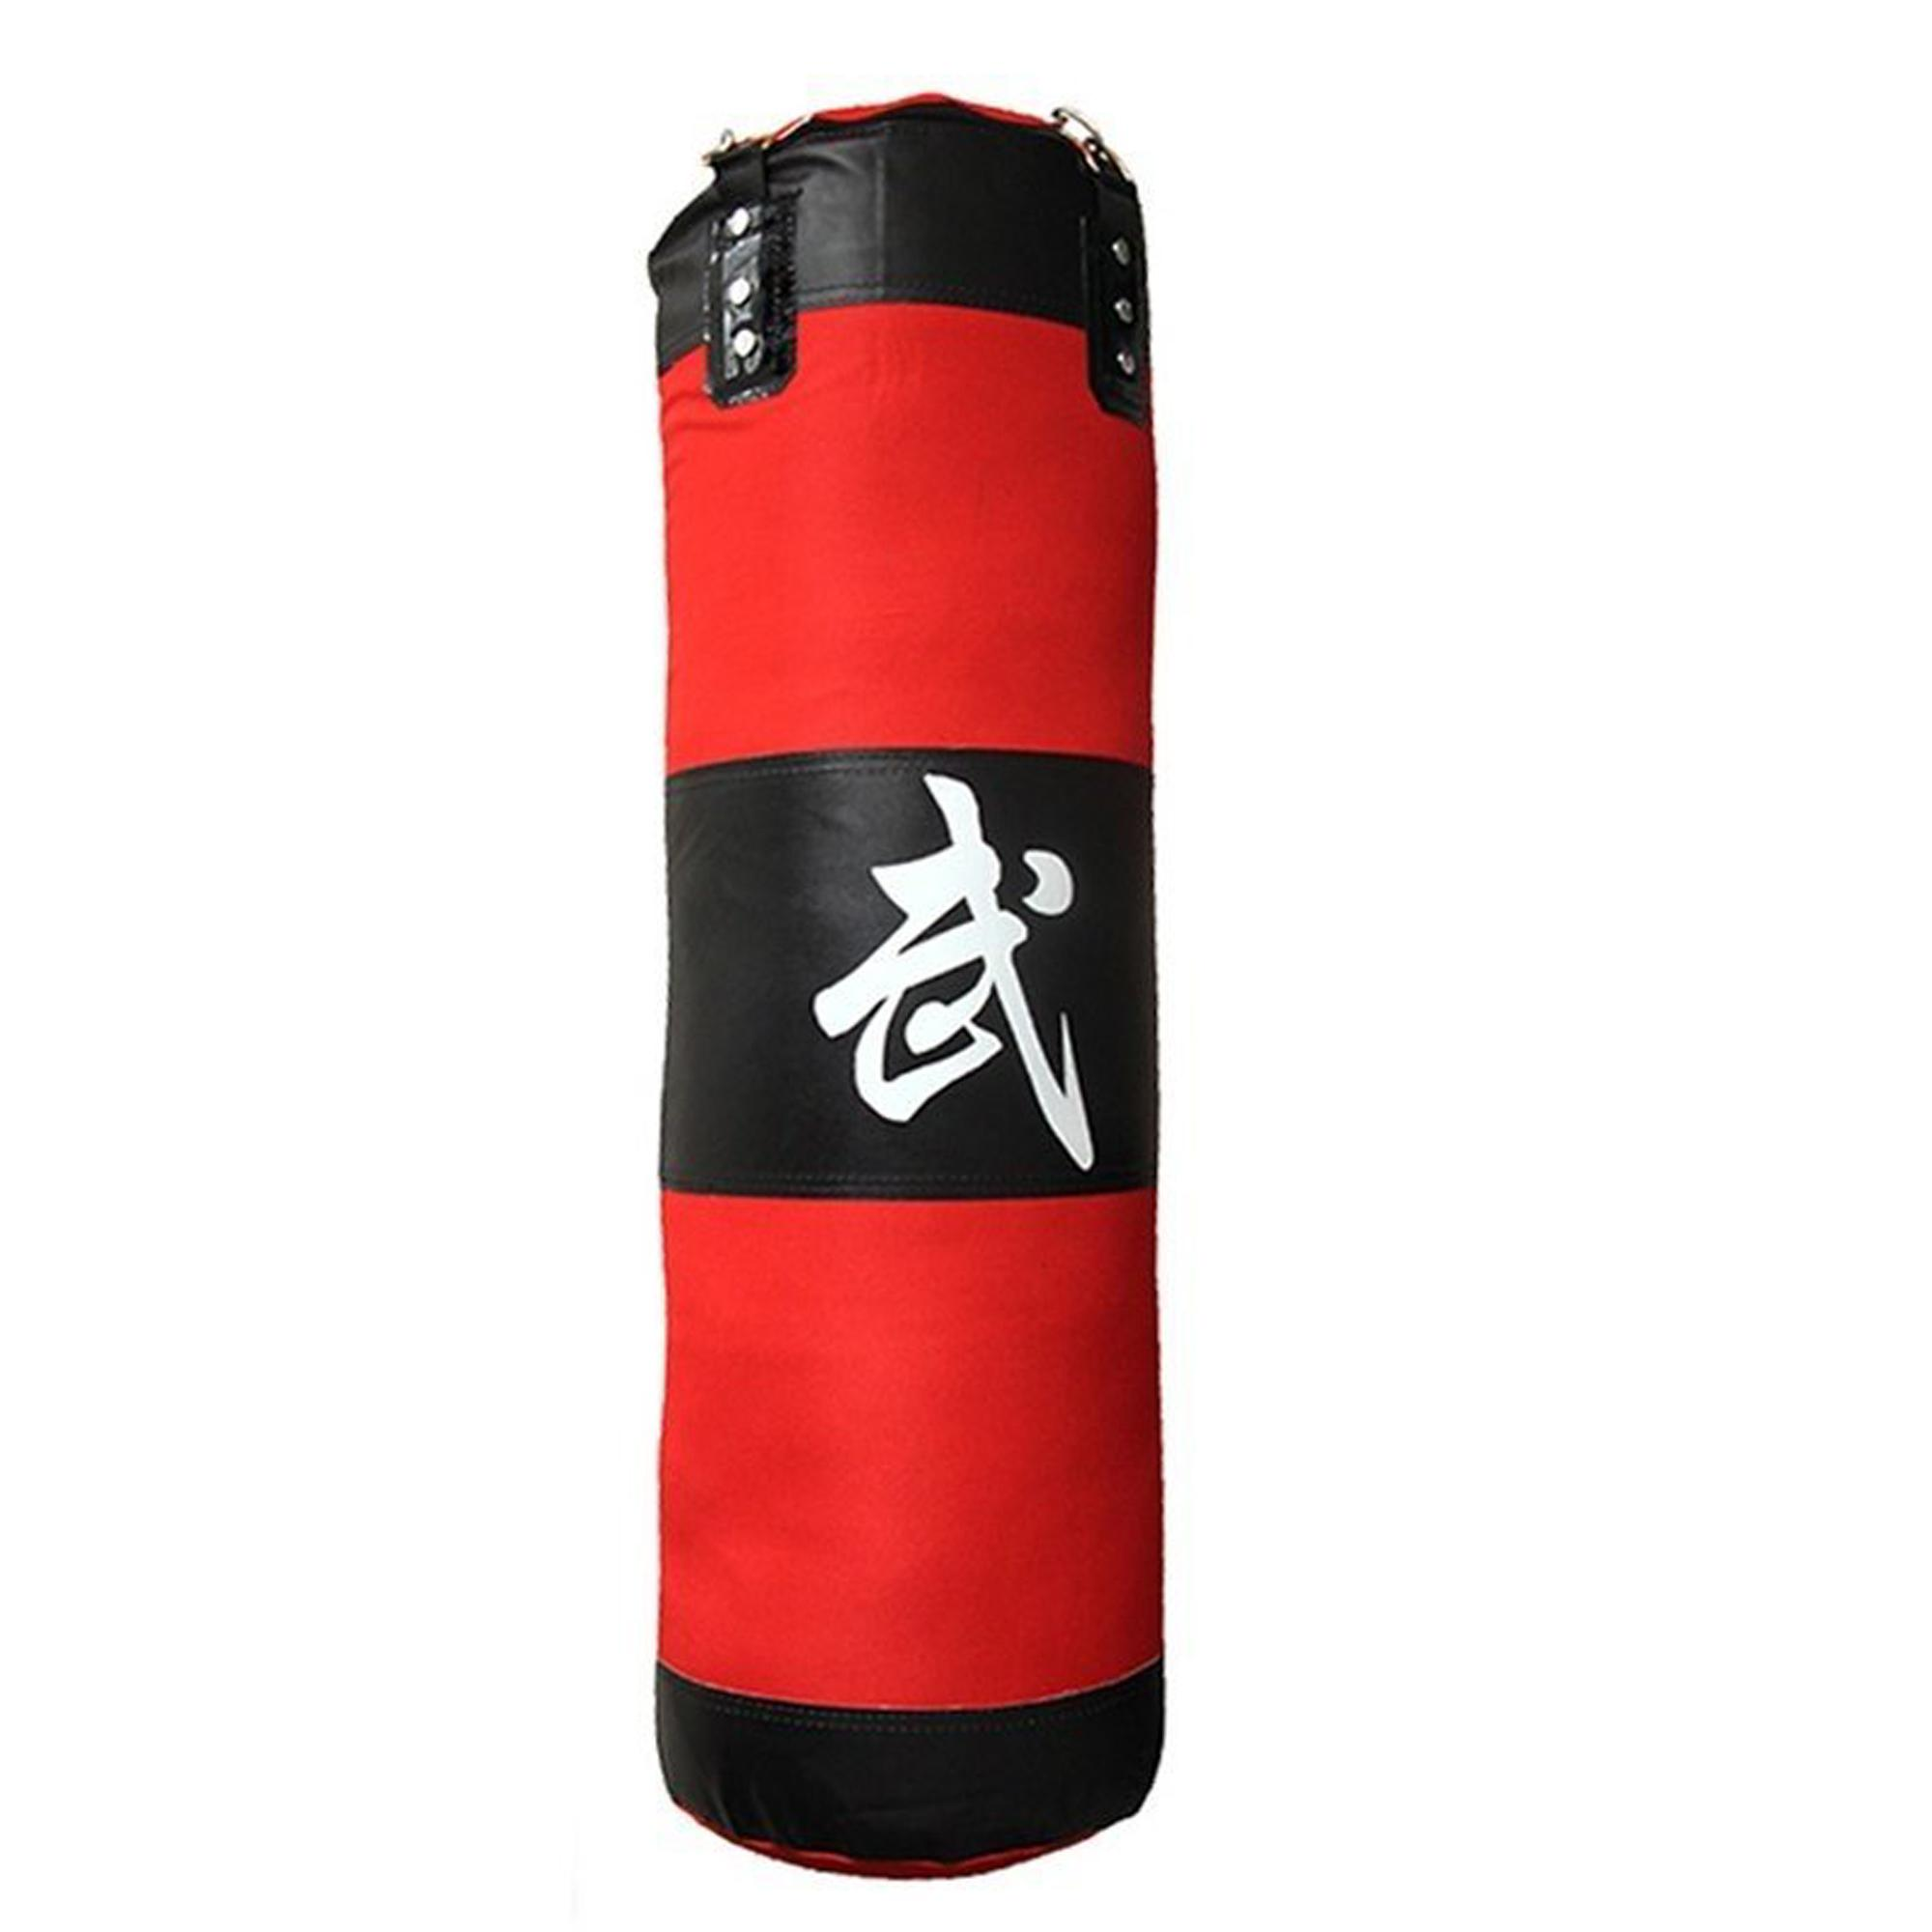 Punching Bags For Sale Boxing Accessories Online Brands Prices